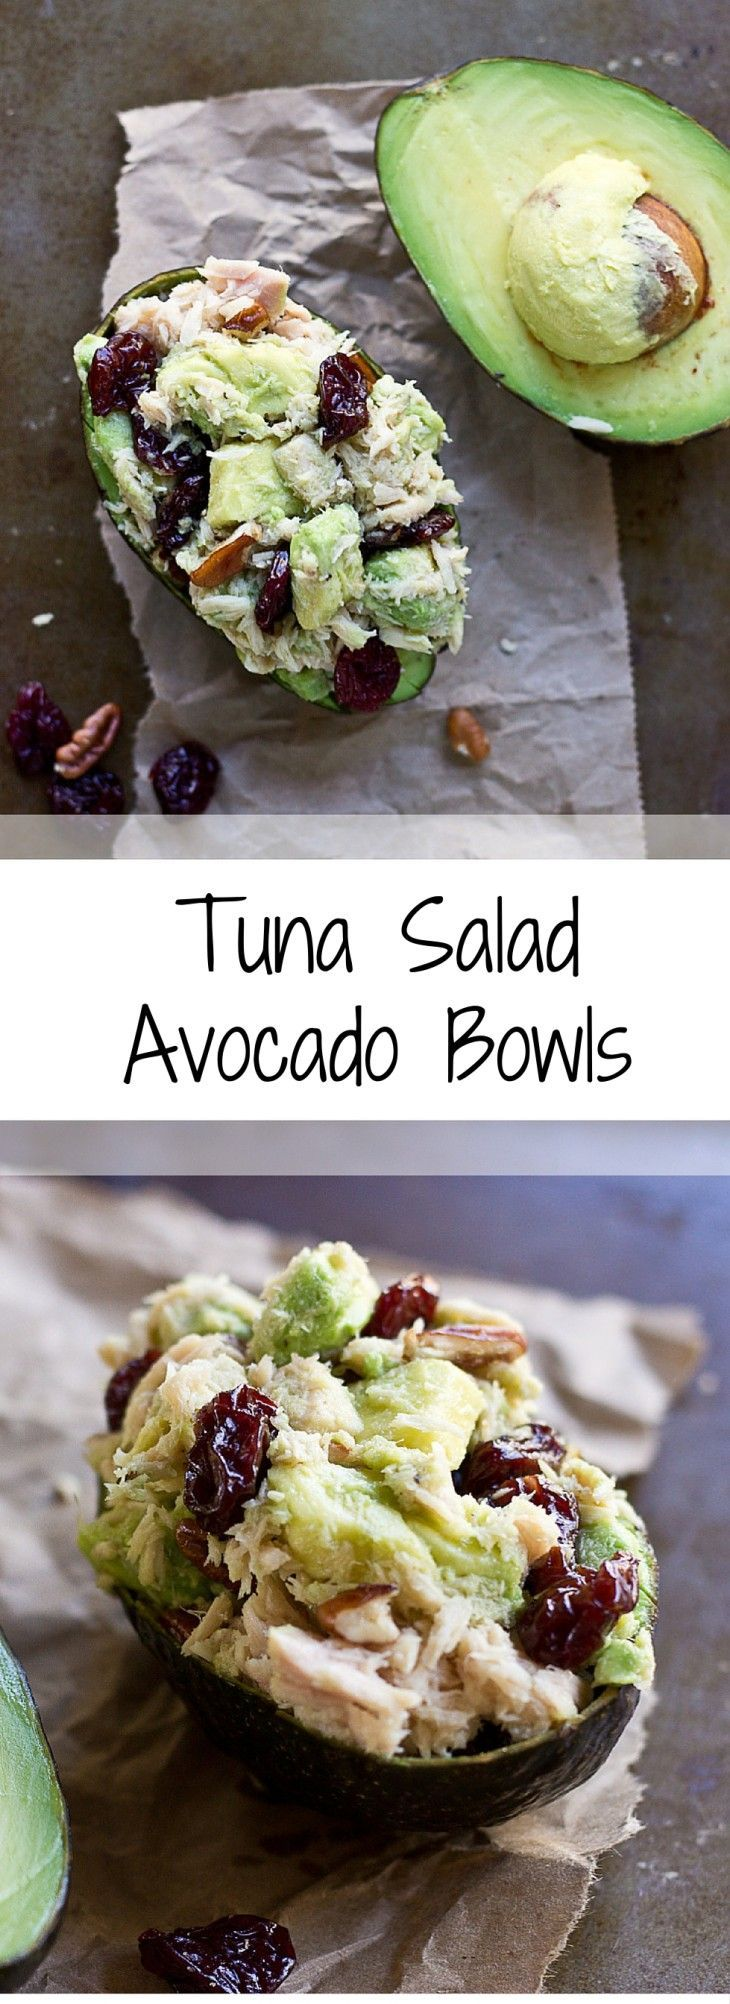 This is one POWER packed tuna salad recipe. These Tart Cherry Tuna Salad Avocado Bowls are filled with healthy fats from tuna, avocado, and pecans, it��s also rich in anthocyanins thanks to Montmorency tart cherries! Hello gawwwgeous!